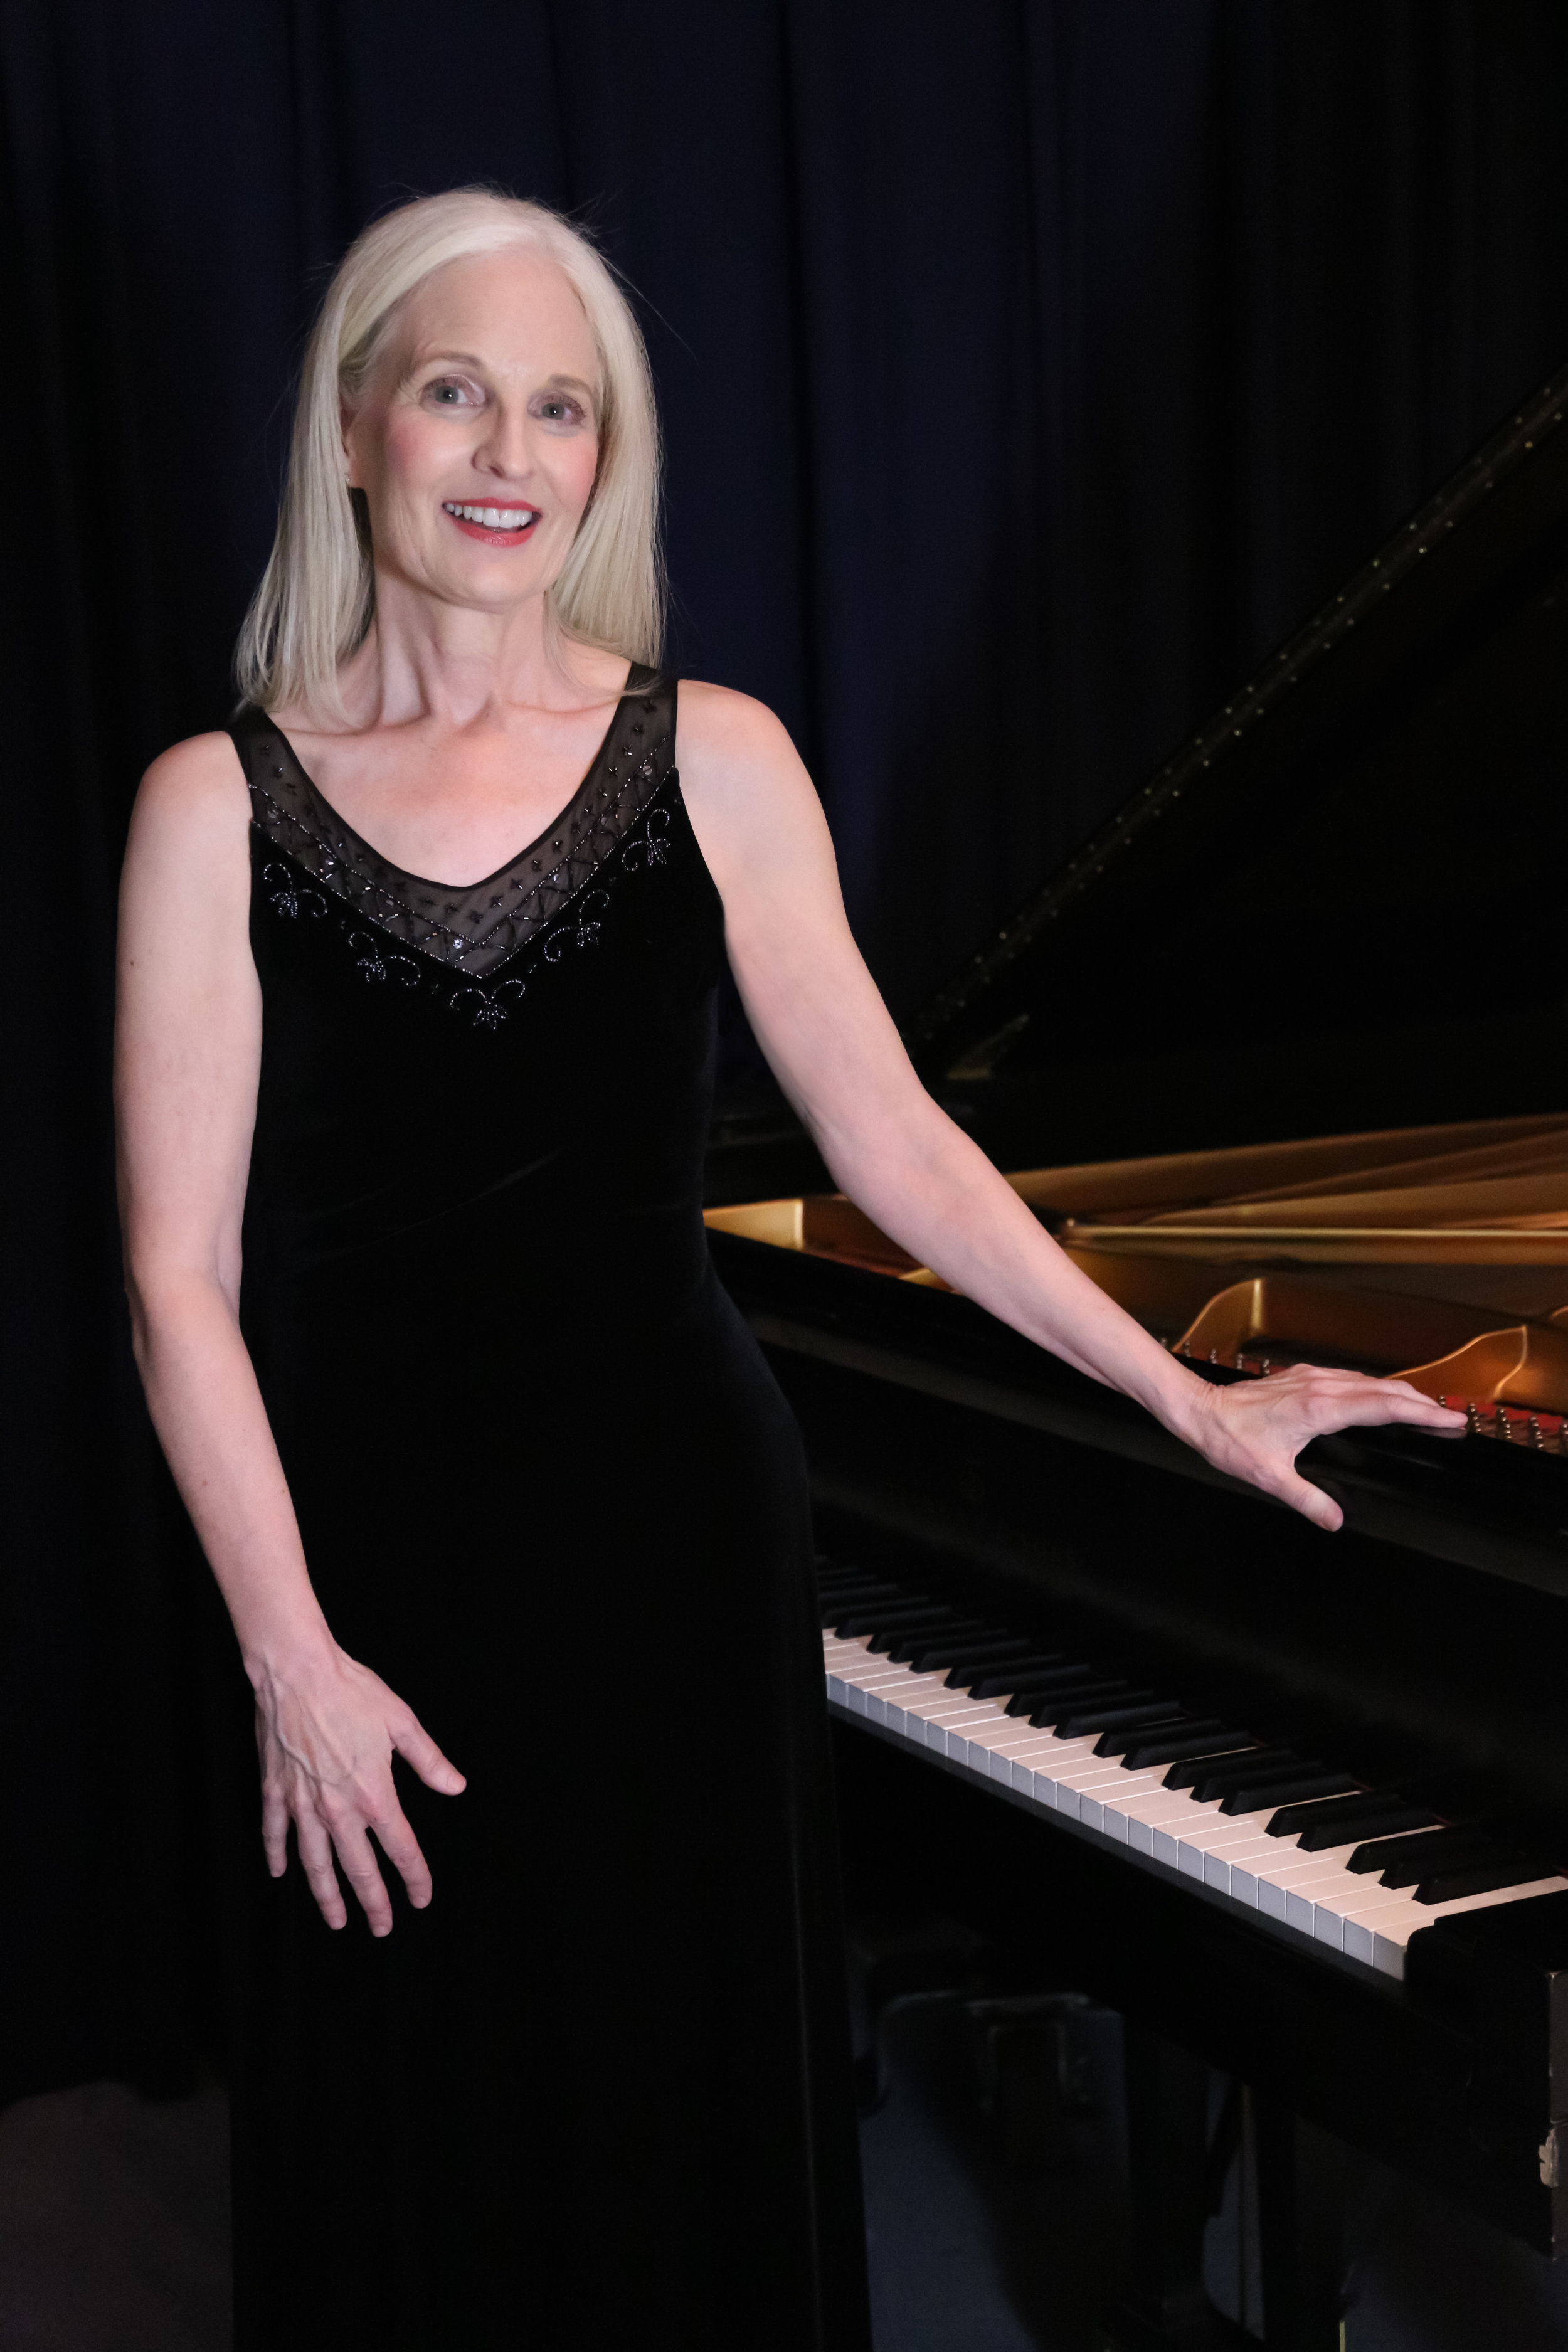 Saturday, February 25 at 8:00 p.m . Nocturnal Concert featuring music of Chopin, The Beatles, and American composers Joplin, Gershwin, and others. 45 minute concert.